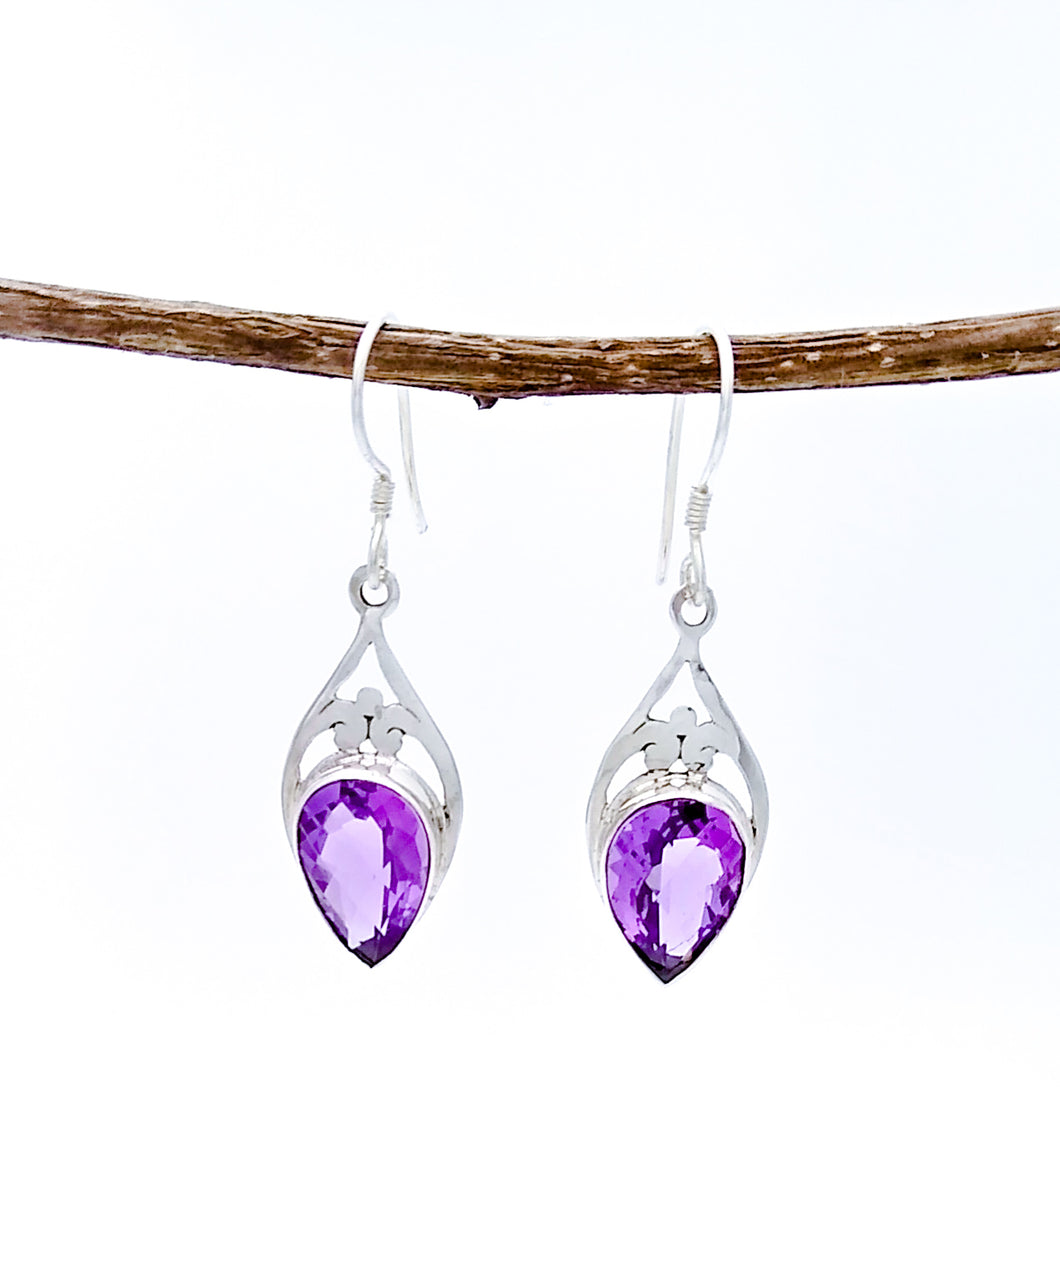 Sterling Silver Earrings with Large Amethyst